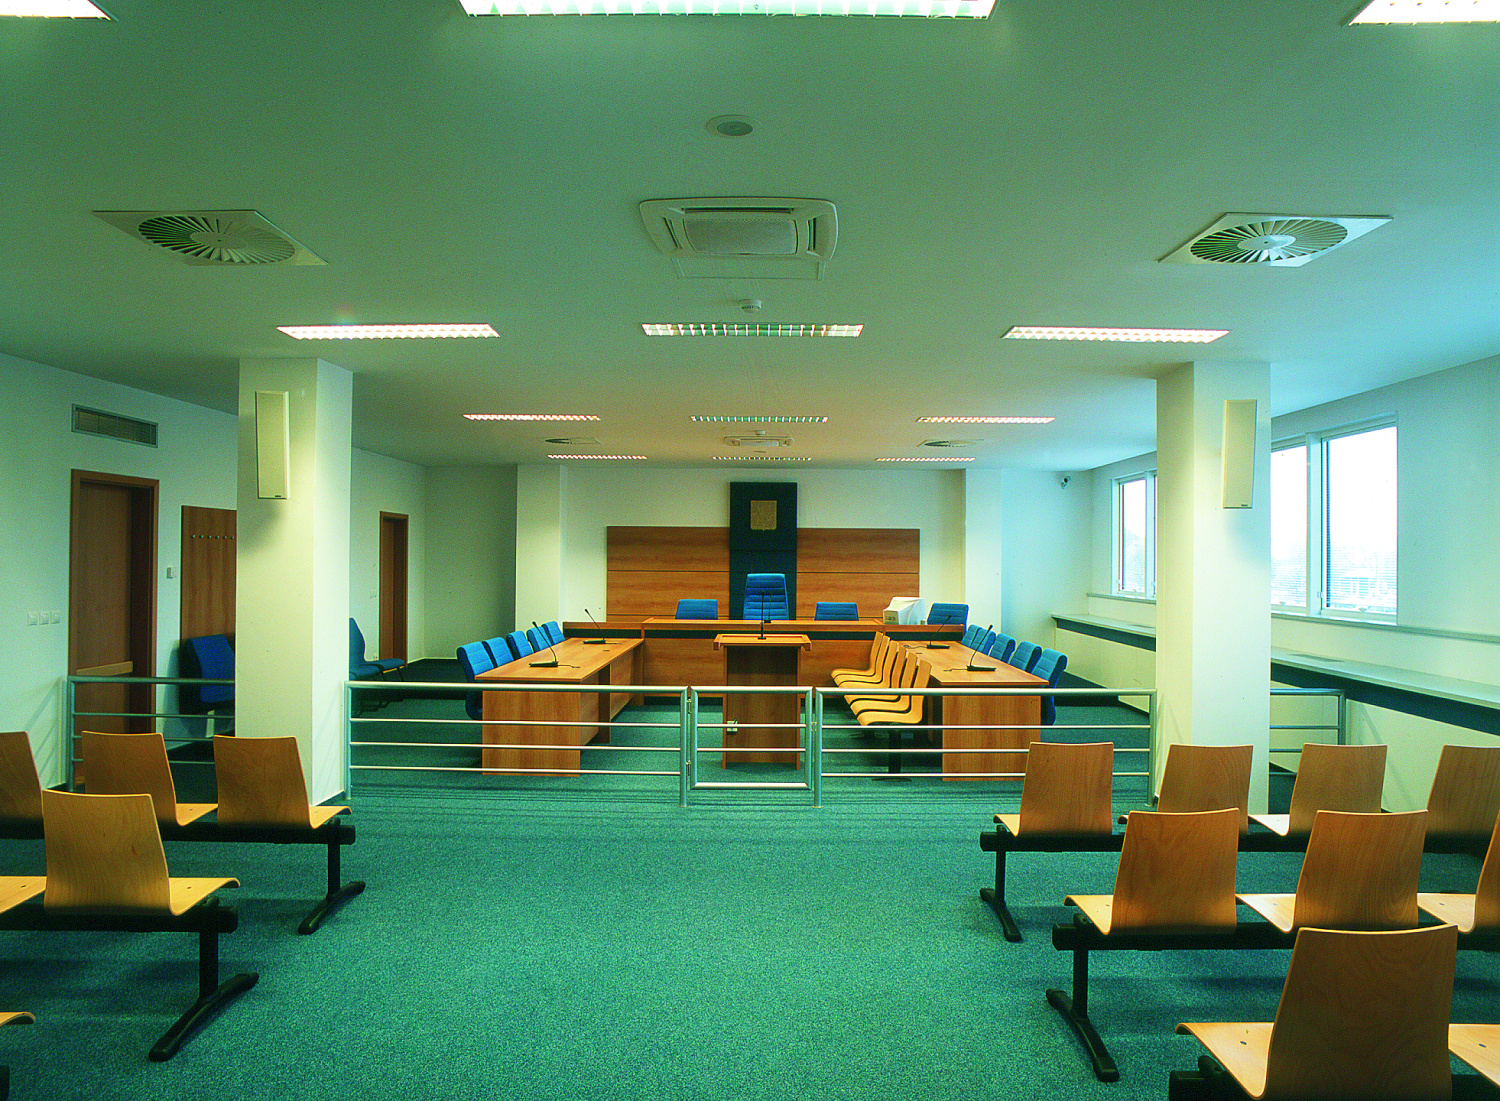 Building Conversion to the District Court Offices